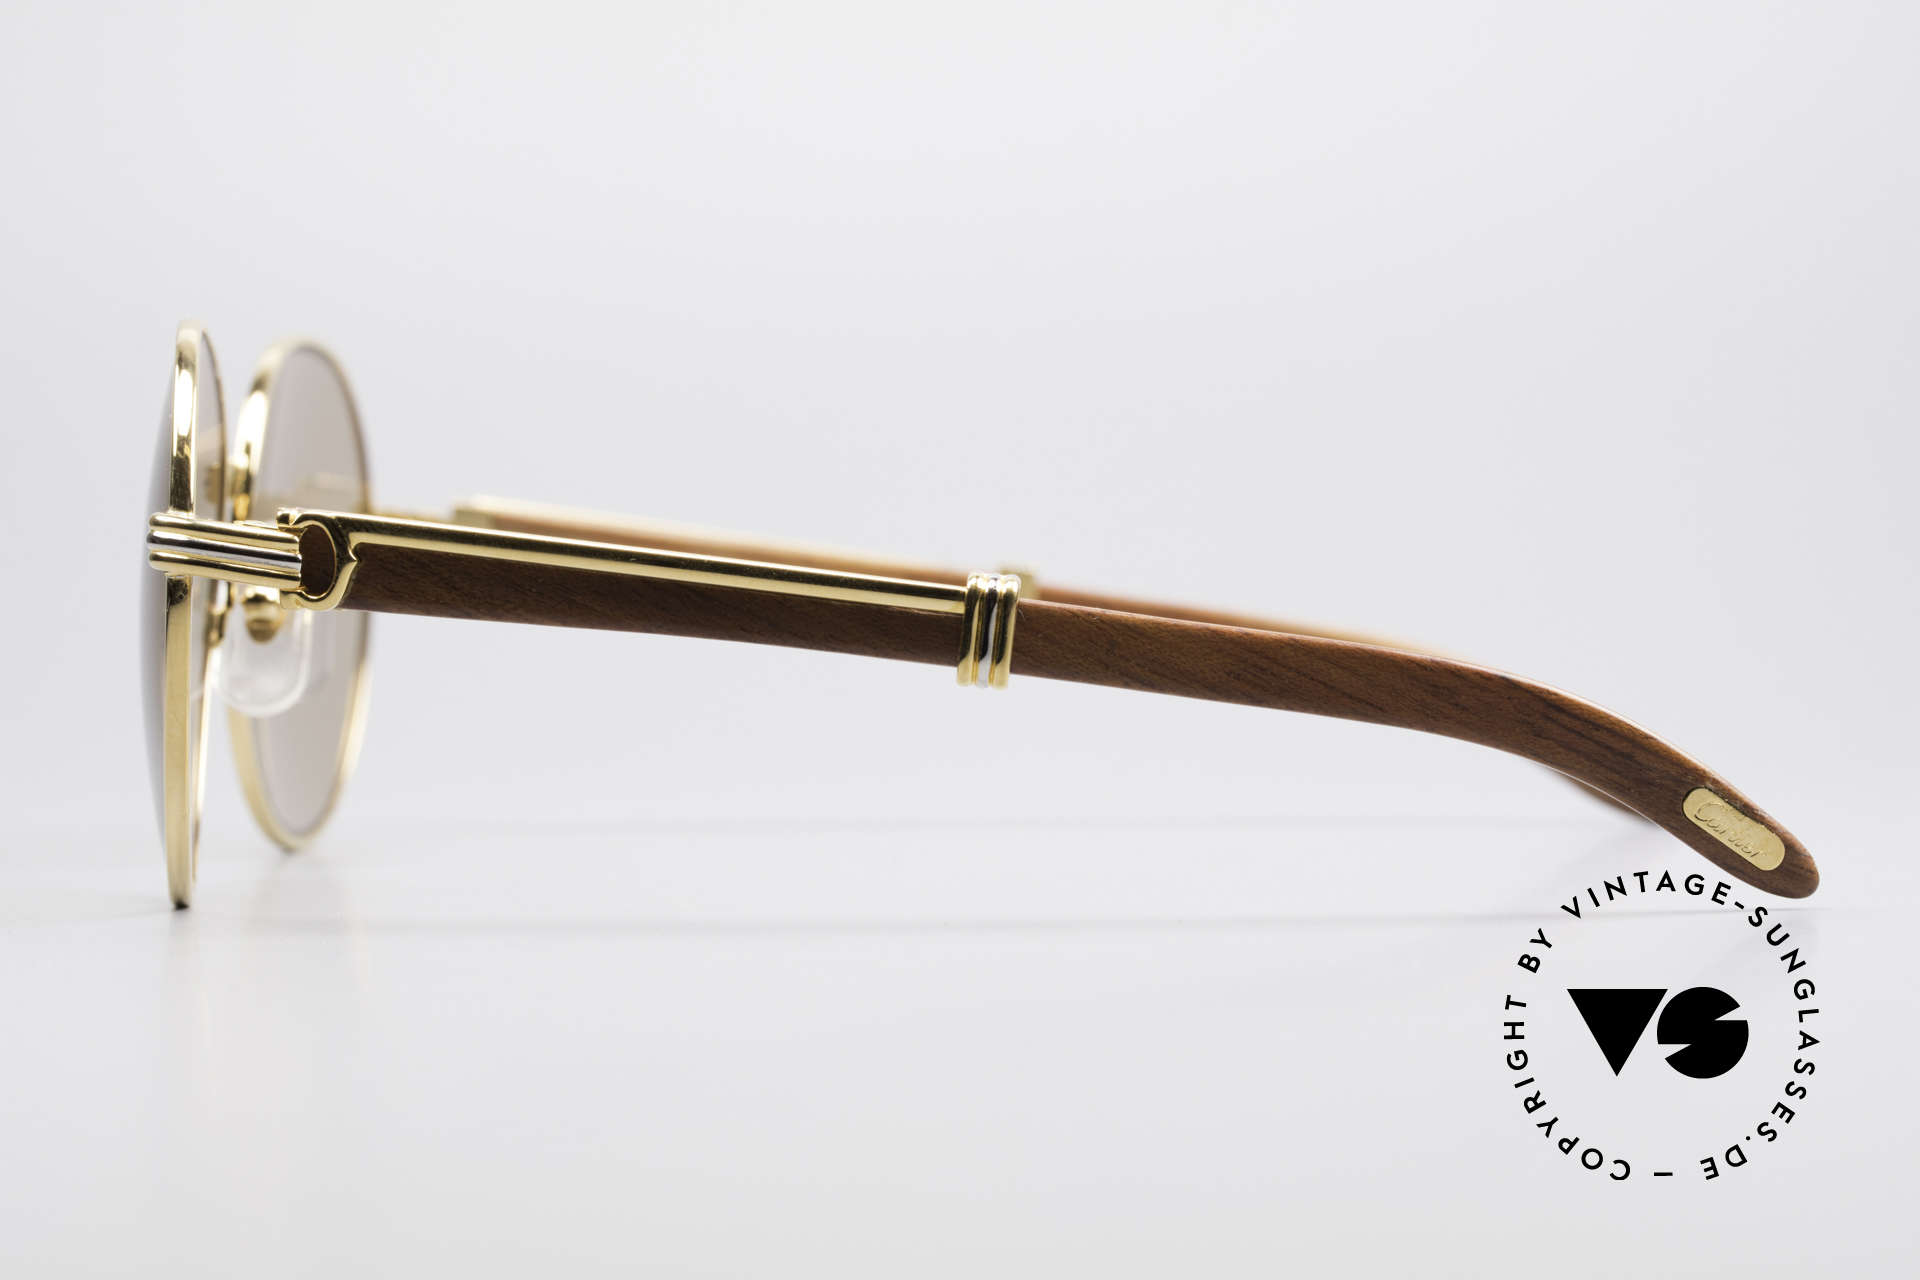 Cartier Bagatelle Bubinga Precious Wood Shades, model of the legendary 'PRECIOUS WOOD' collection, Made for Men and Women